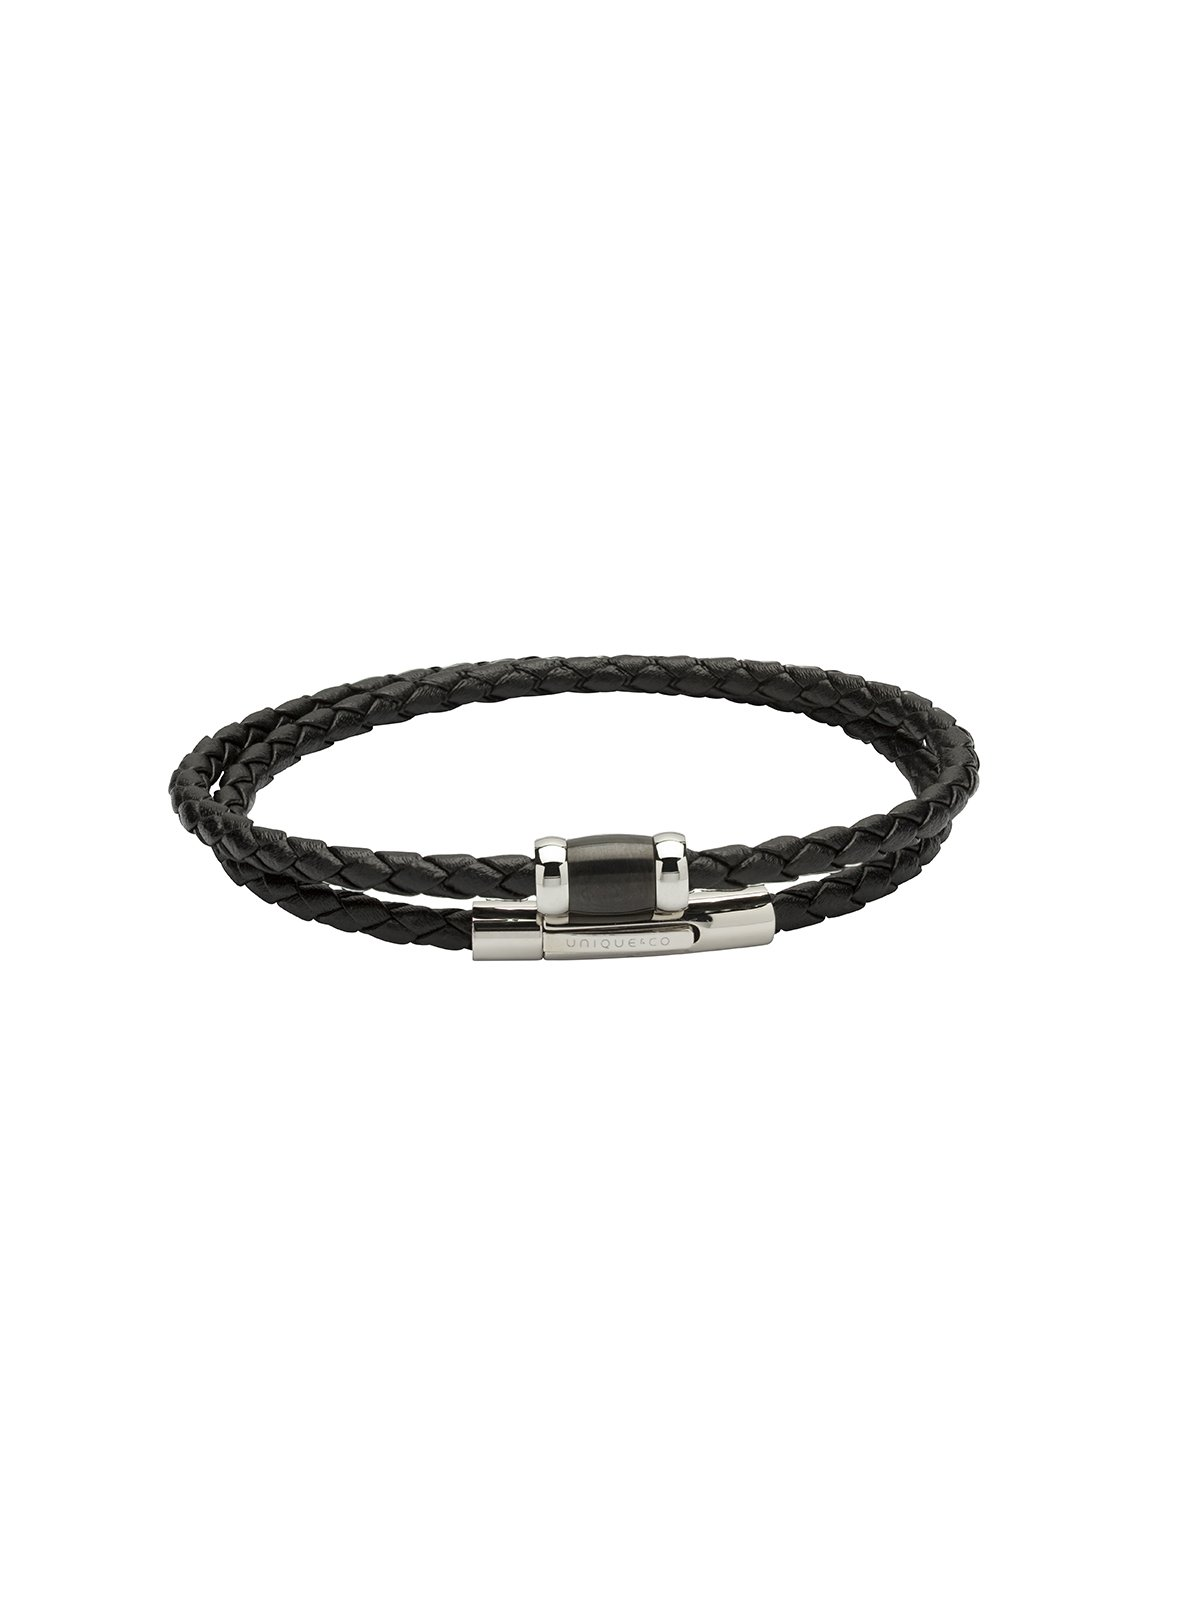 Unique & Co. 21cm Black Leather and Black IP Steel Bracelet B379BL/21CM